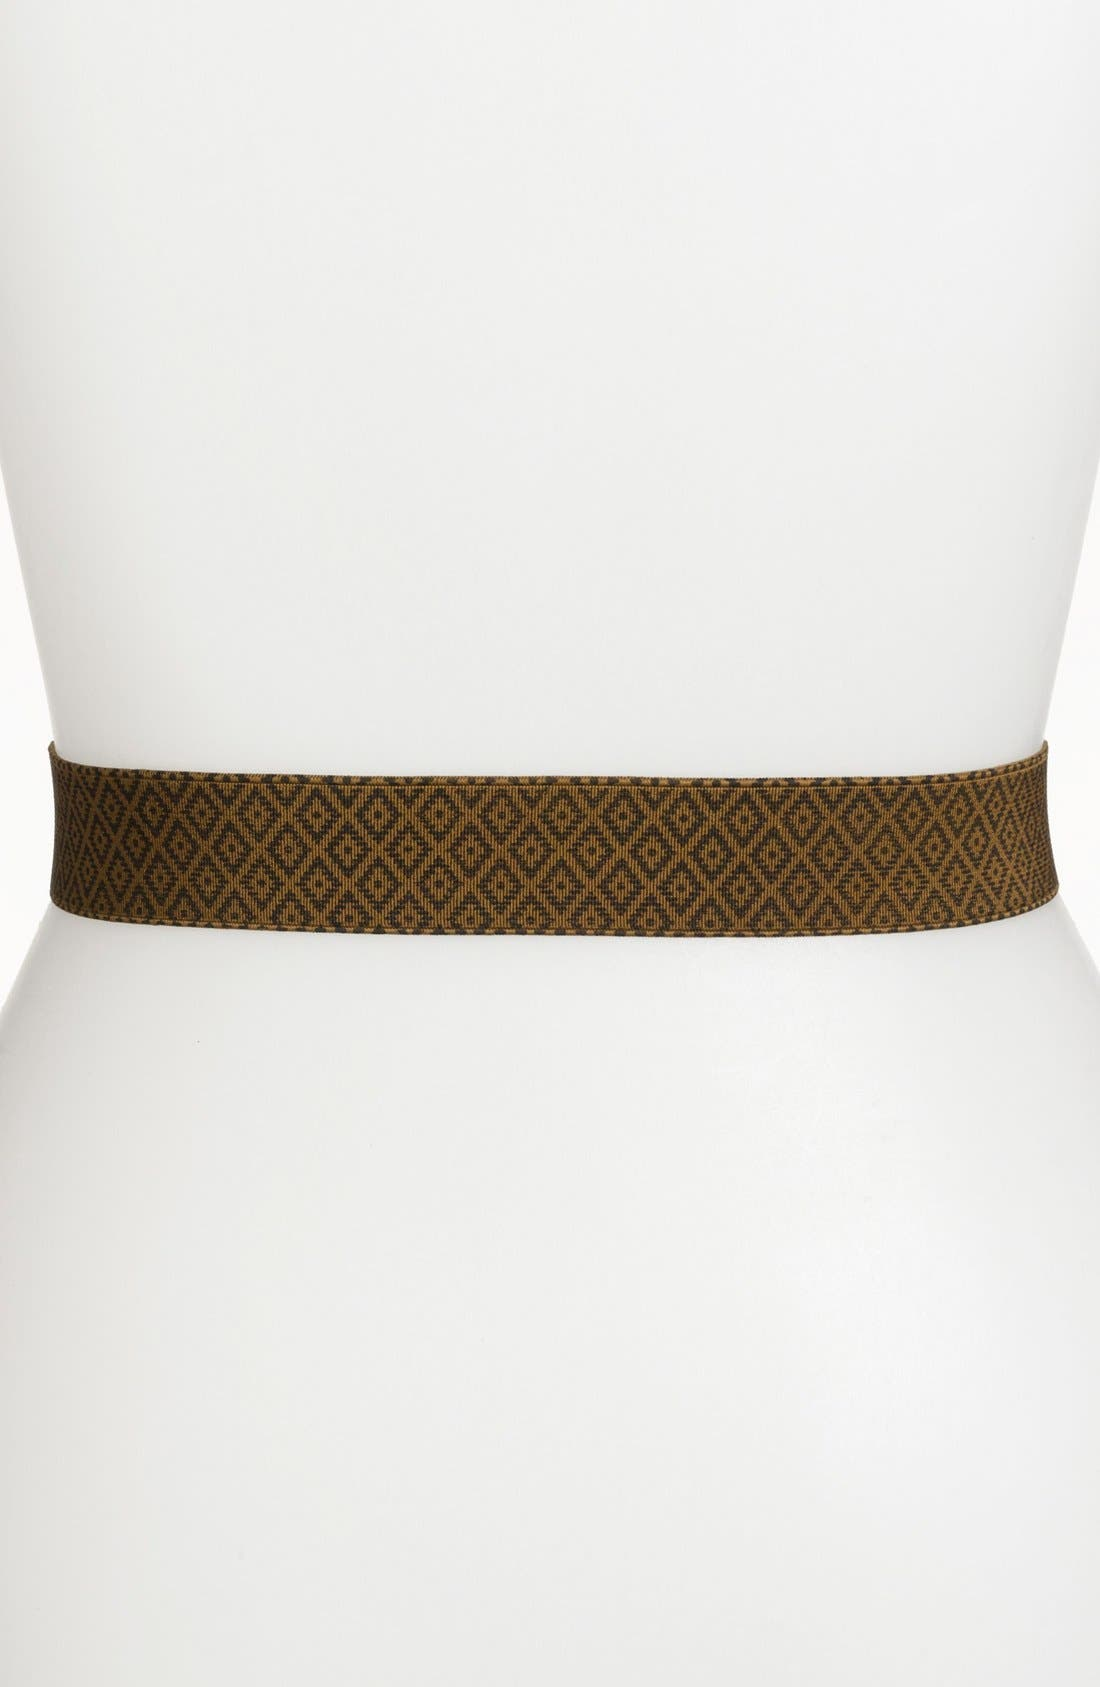 Alternate Image 2  - Tory Burch 'Daria' Printed Stretch Belt